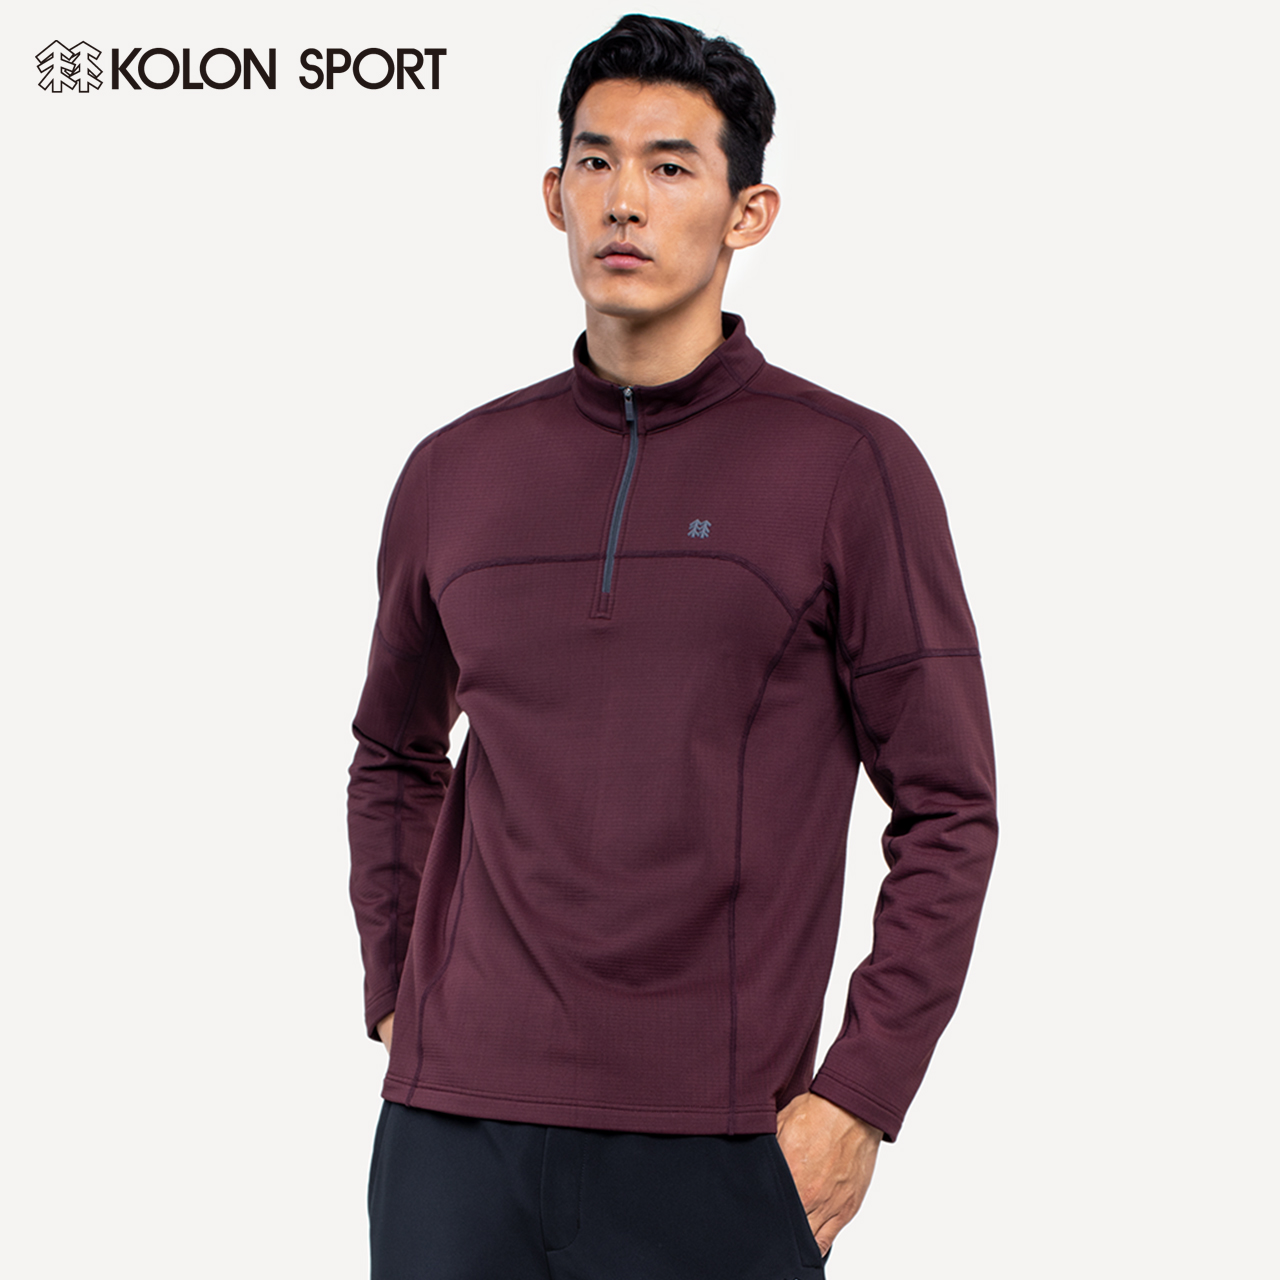 KOLONSPORT Kolon men's autumn/winter multi-color semi-zip long-sleeved T-shirt sports outdoor ride Korean tide.